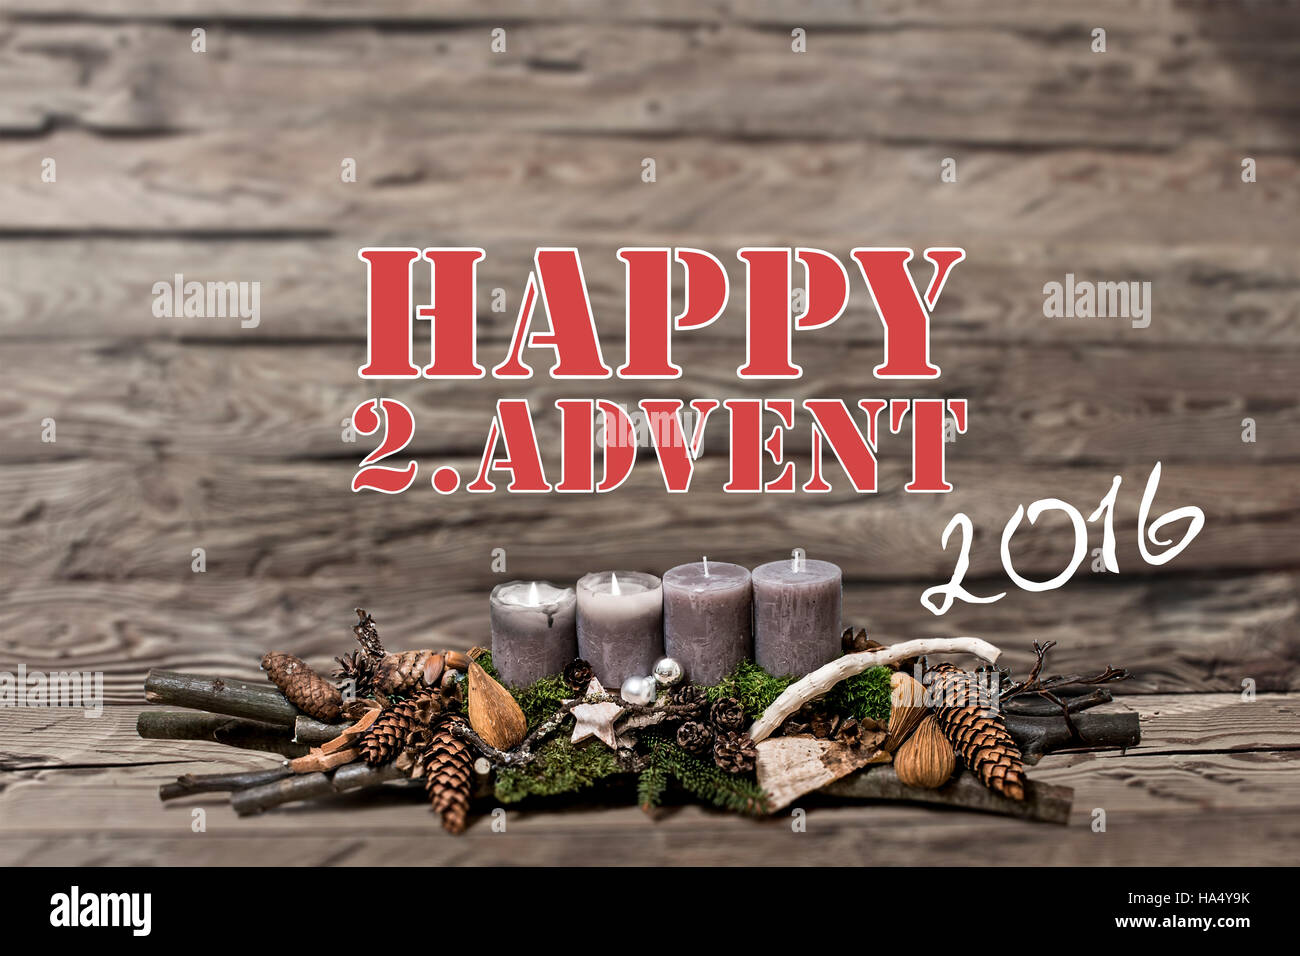 Merry Christmas decoration advent 2016 with burning grey candle Blurred background text message englisch 2nd - Stock Image